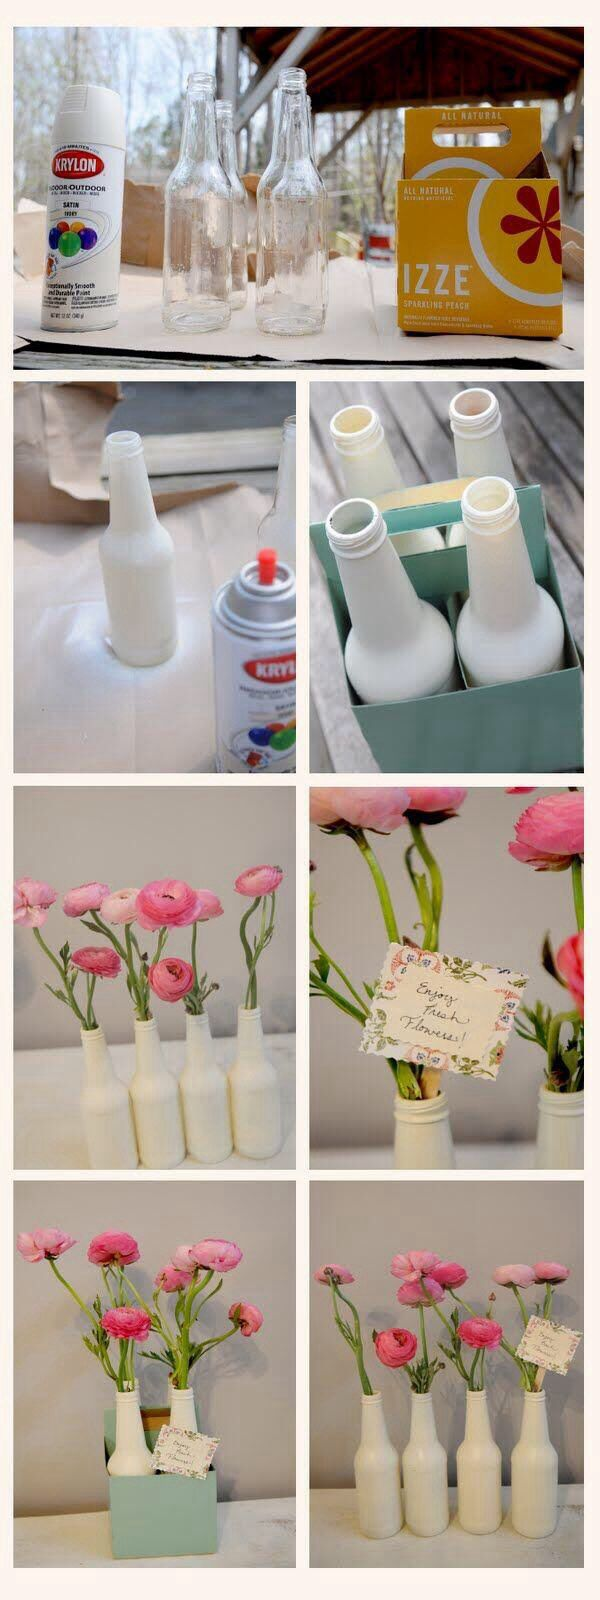 painted bottles into flower holders